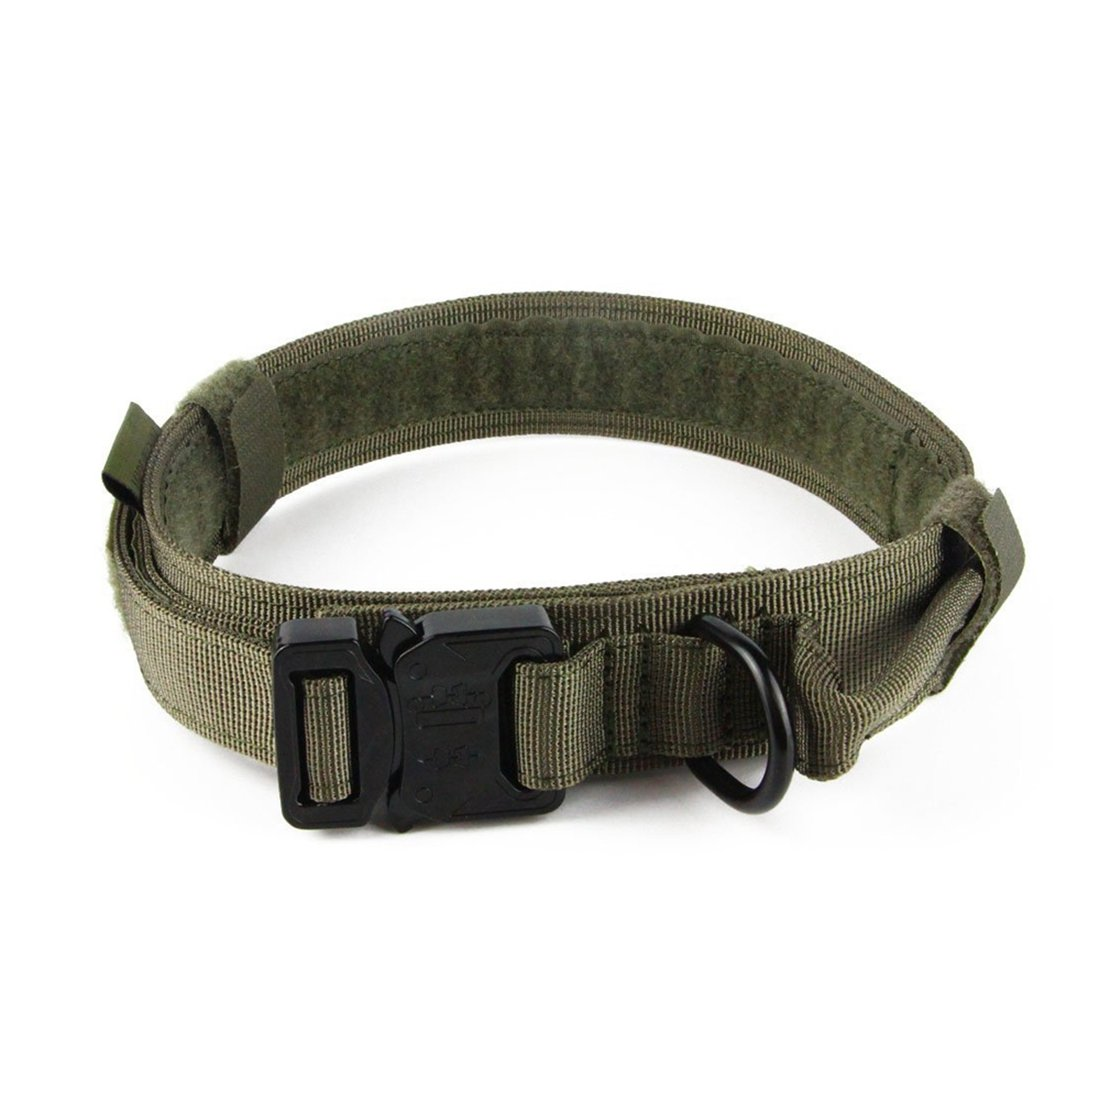 Ranger Green 1.5''XL Ranger Green 1.5''XL yisibo Harness Dog Collar Nylon Tactical Dog Collar Military Training Adjustable Dog Collar for Small Medium Large Dogs with D-Ring Handle Metal Buckle Collar(1.5''XL, Ranger Green)